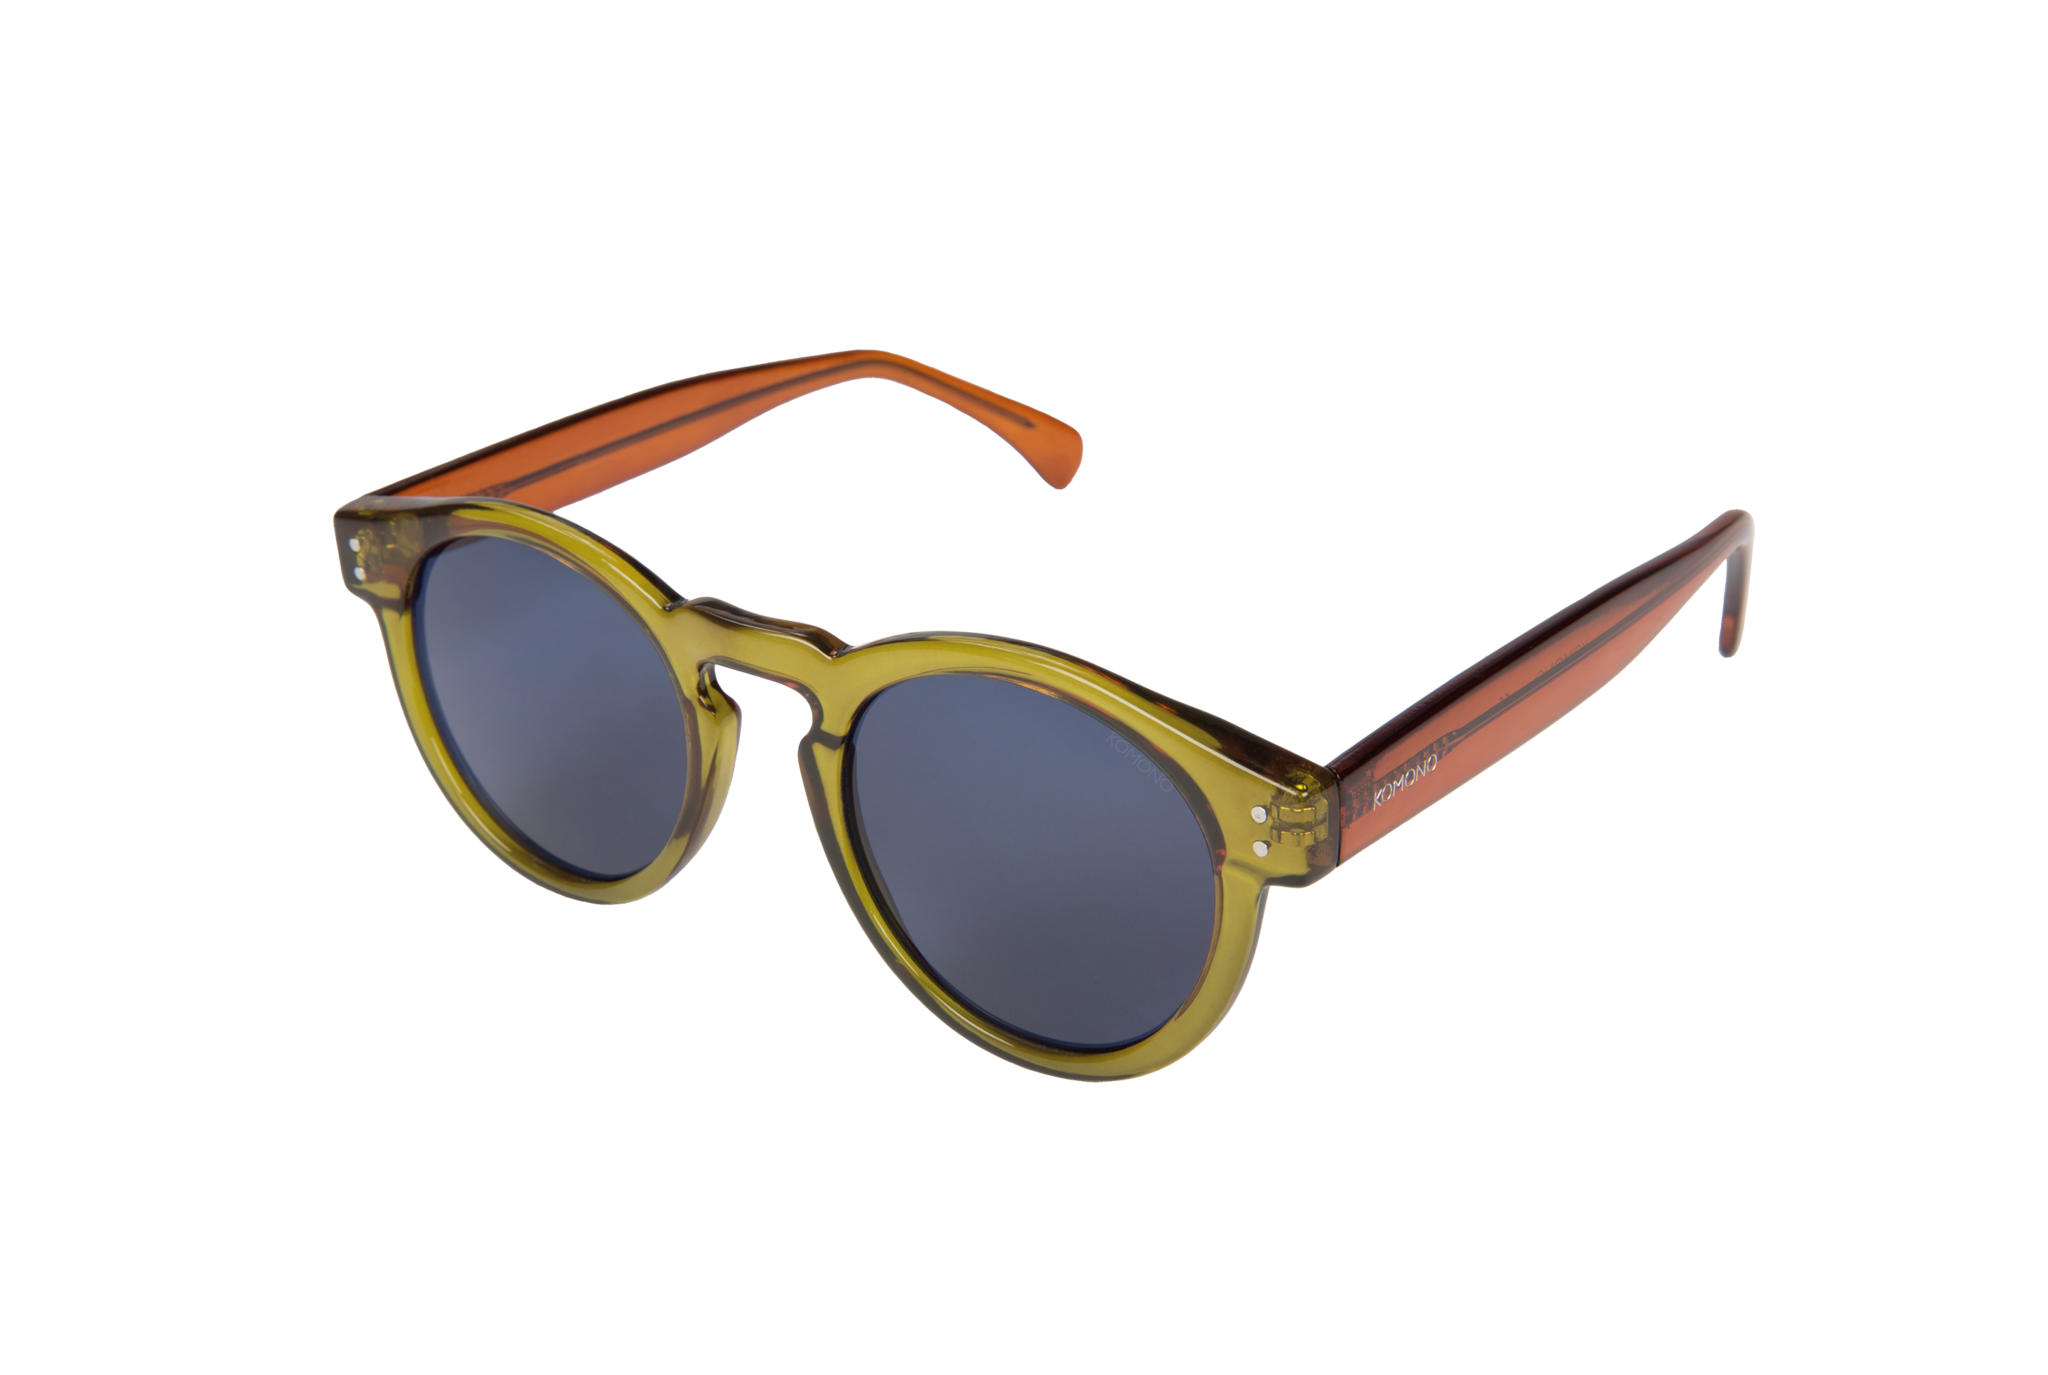 Komono quality sunglasses. The Clement has a very popular frame design for men and women.